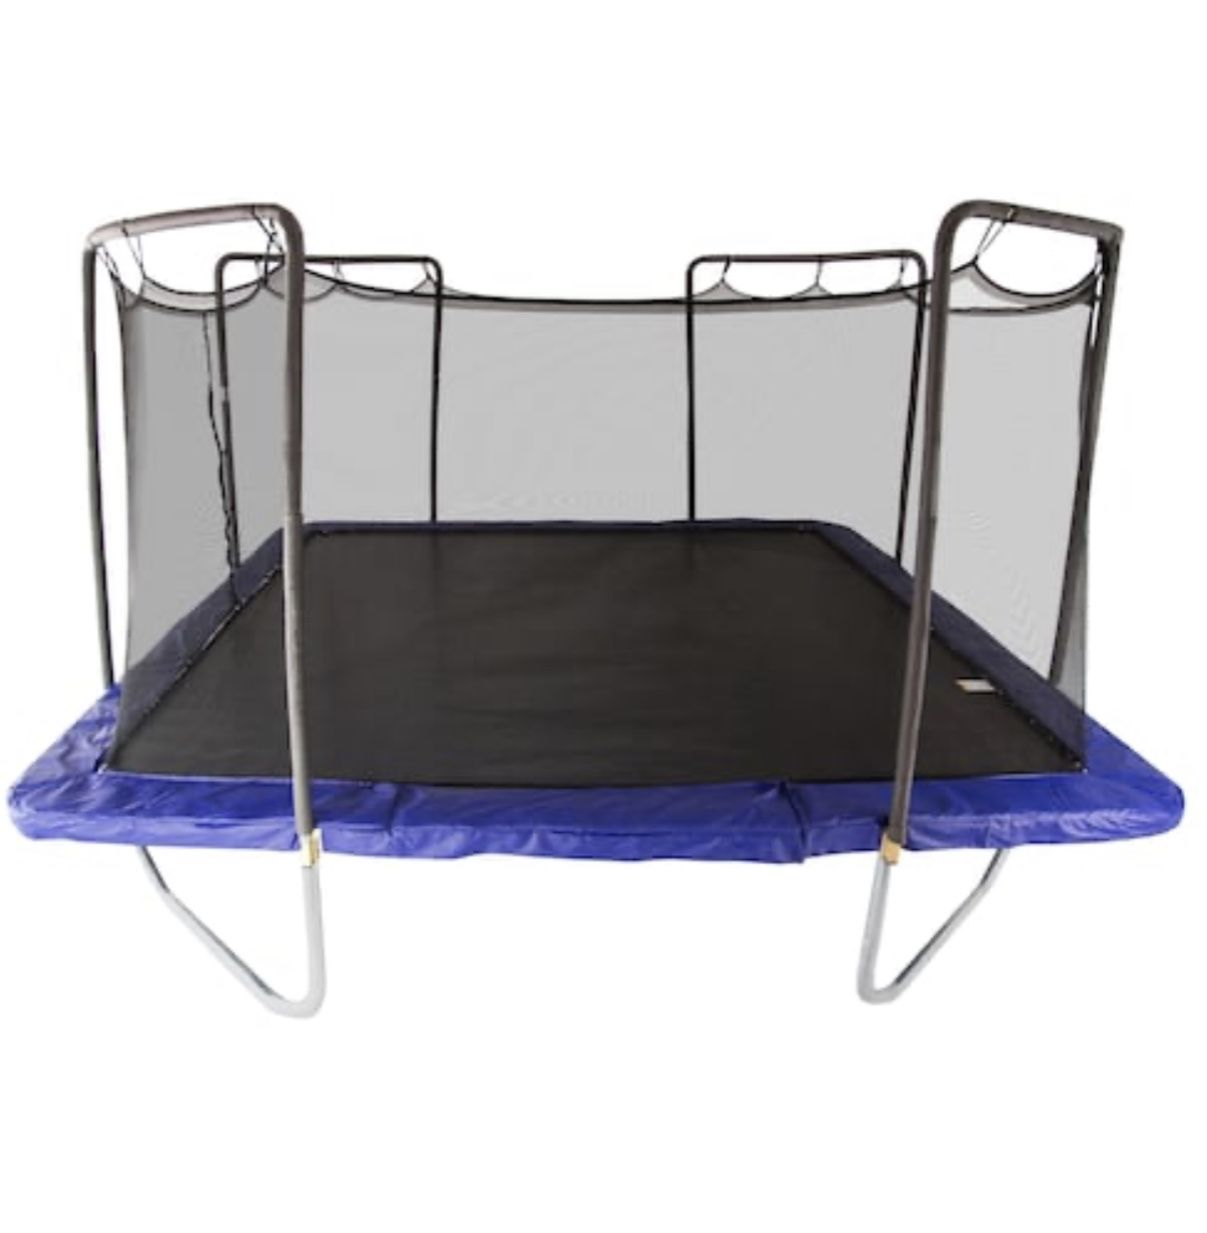 Skywalker Trampolines 15 Ft Rectangle Trampoline With Enclosure In Blue Strc915 2 The Home Depot In 2020 Trampoline Enclosure Trampoline Rectangle Trampoline